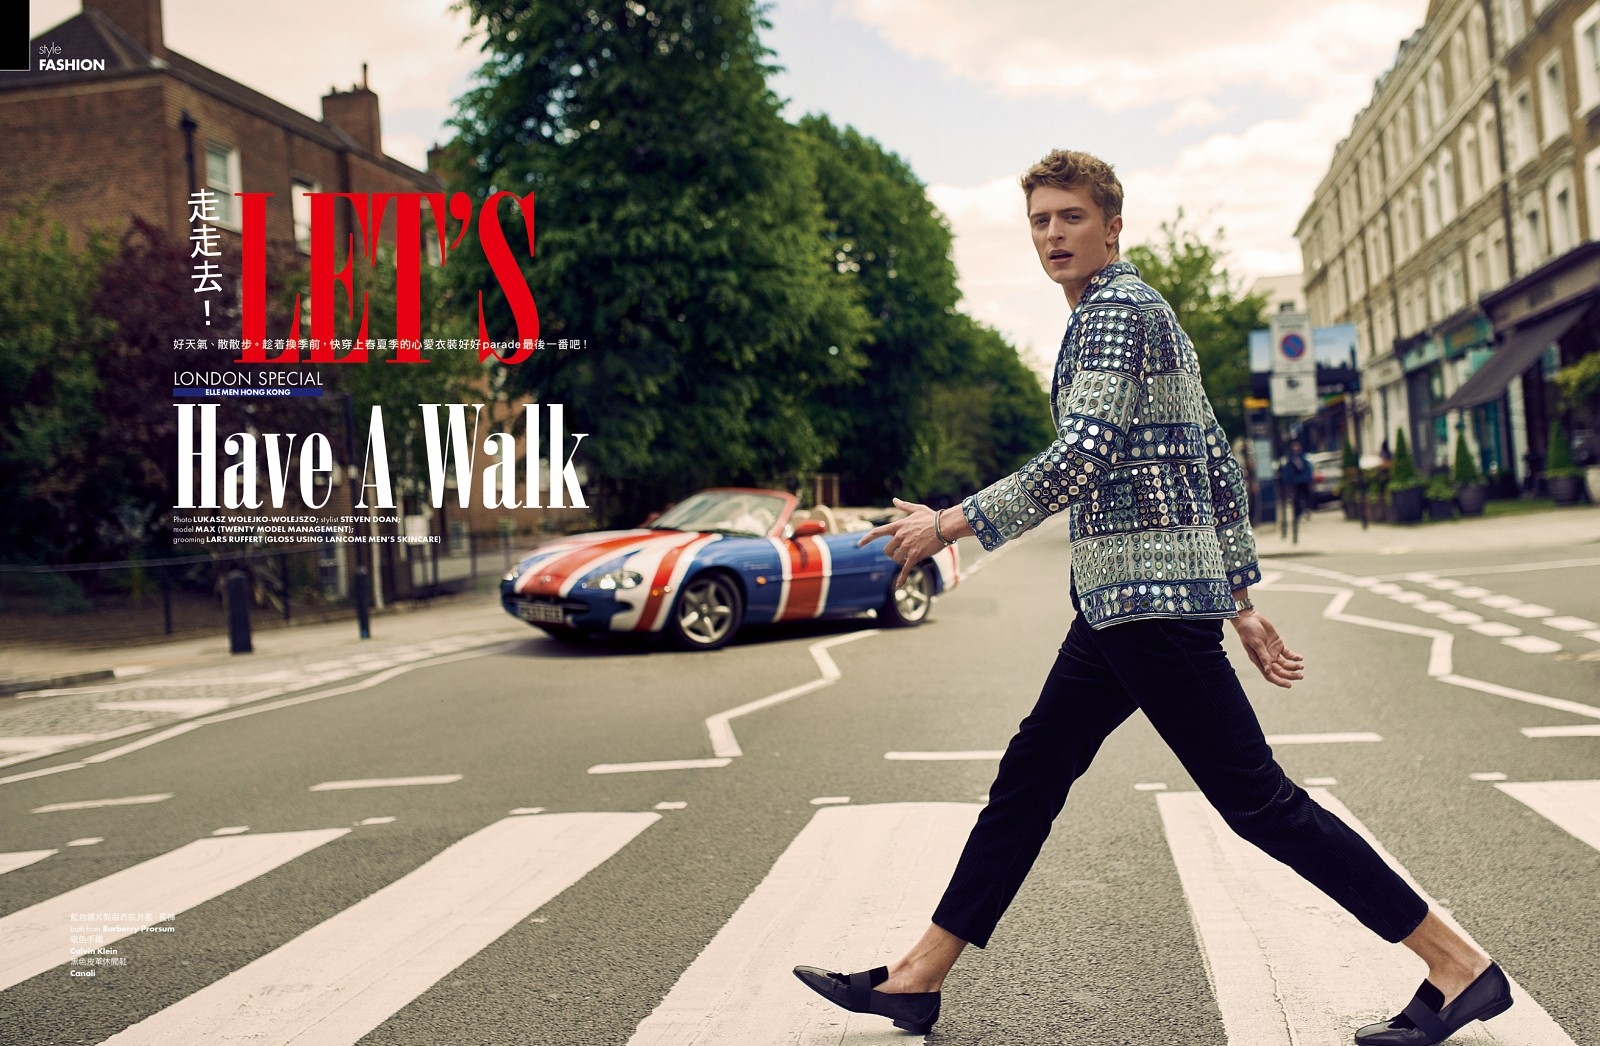 """Let's Have a Walk"" Max Rendell by Lukas Wolejko-Wolejszo for ELLE Men UK. Styled by Steven Doan and grooming by Lars Rüffert."